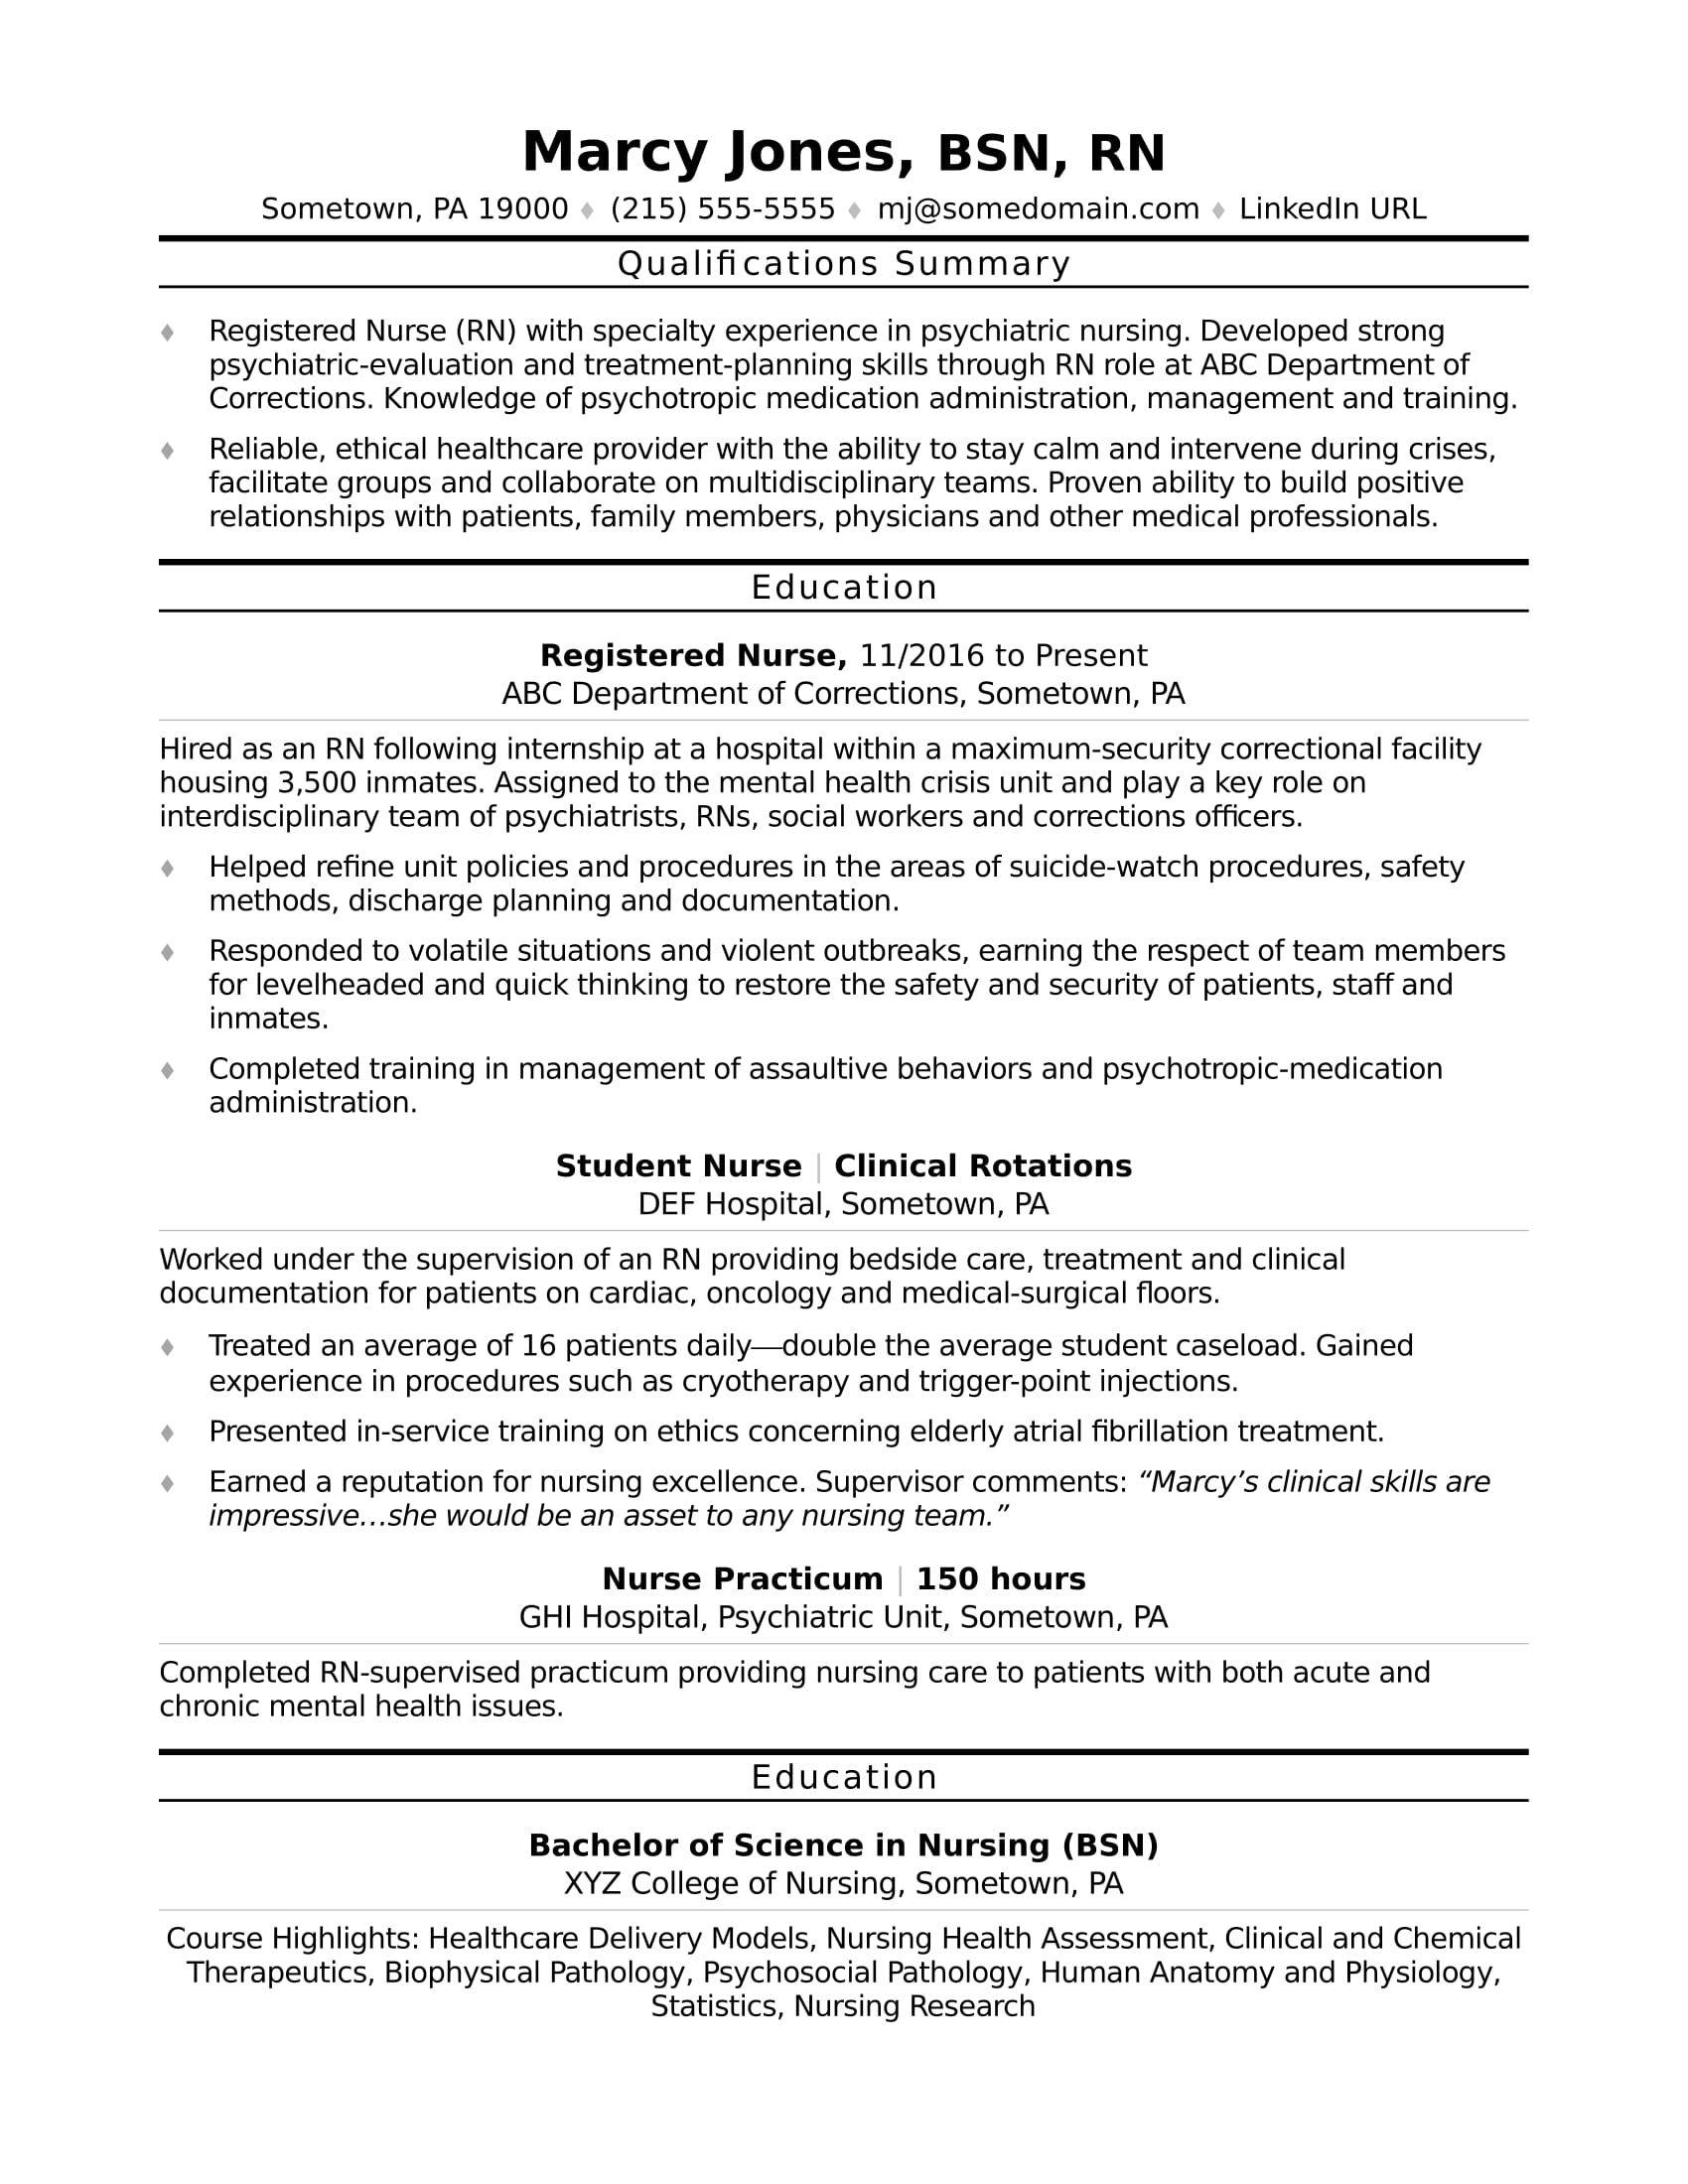 Registered Nurse Rn Resume Sample Monster Nursing Objective Entry